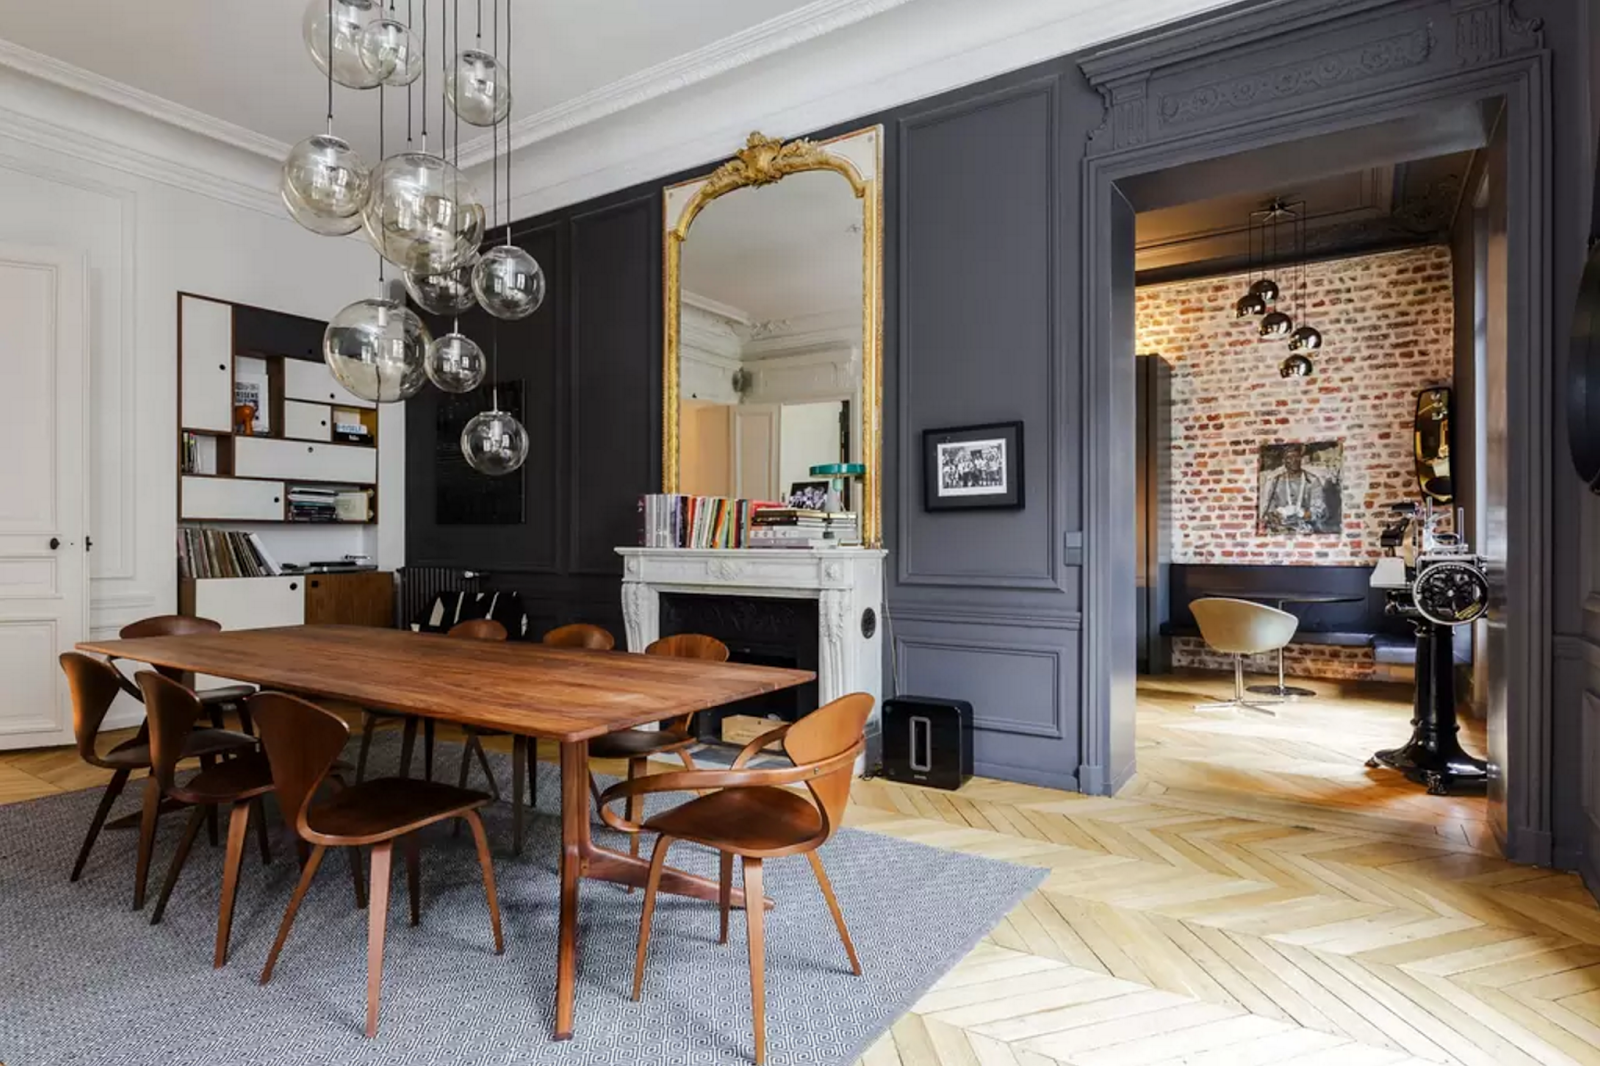 design attractor: Spectacular Parisian Apartment with Mid Century ...